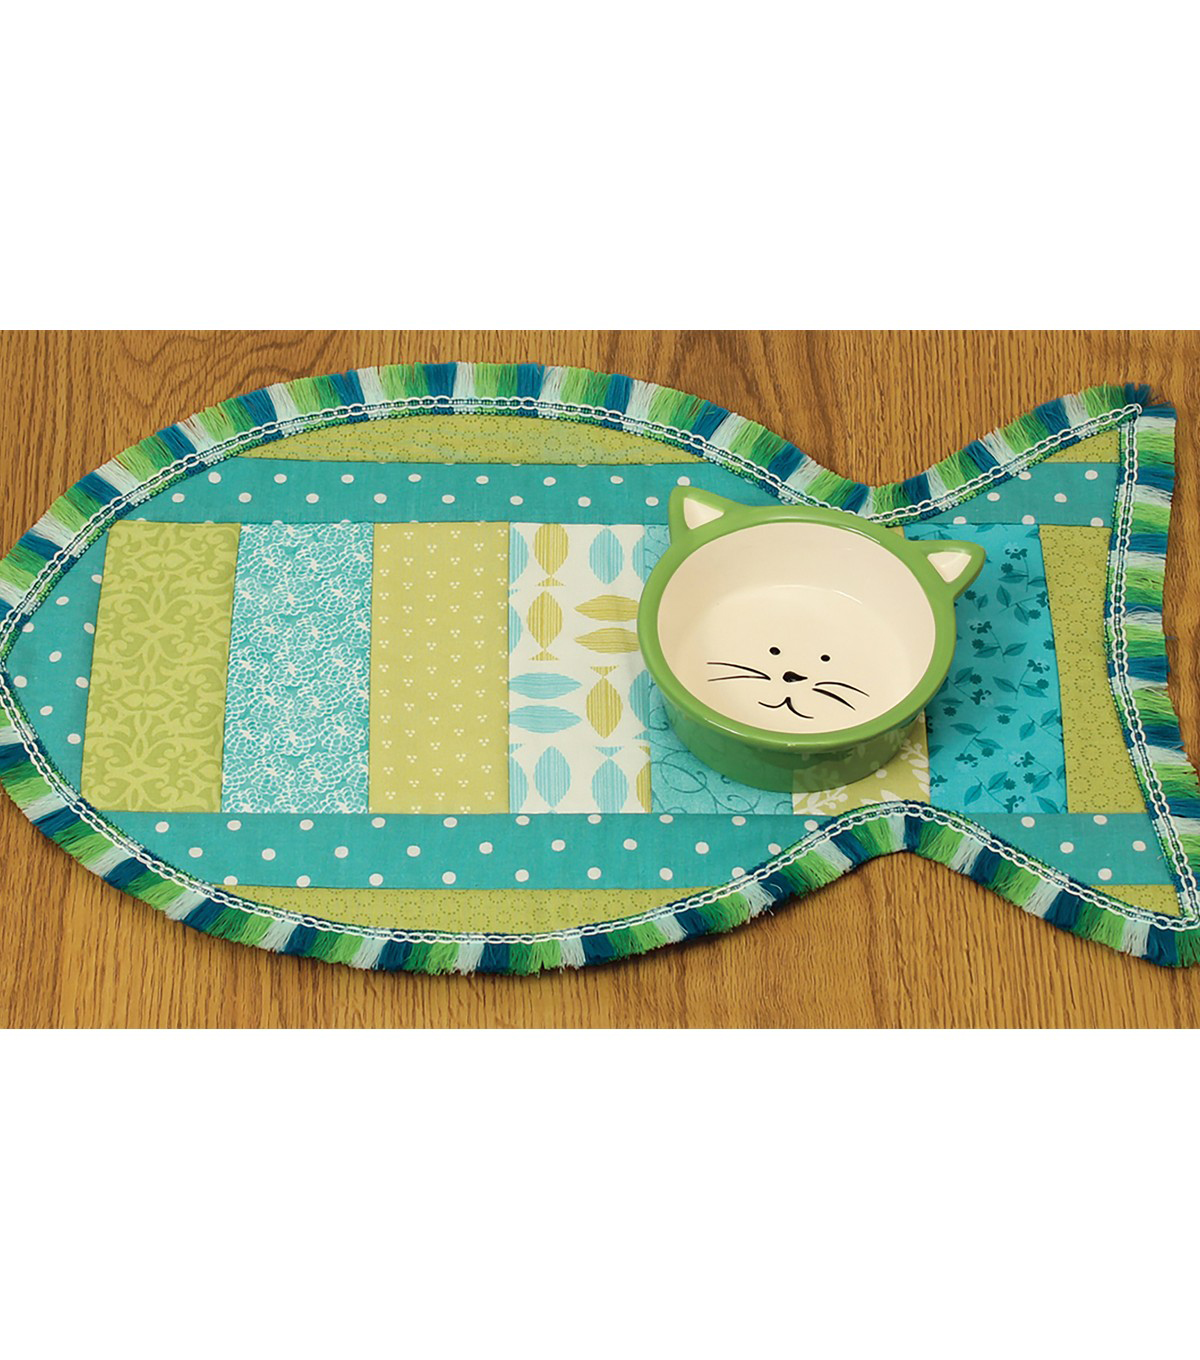 June Tailor Quilt As You Go 11\u0027\u0027x18\u0027\u0027 Pet Placemat-Cat